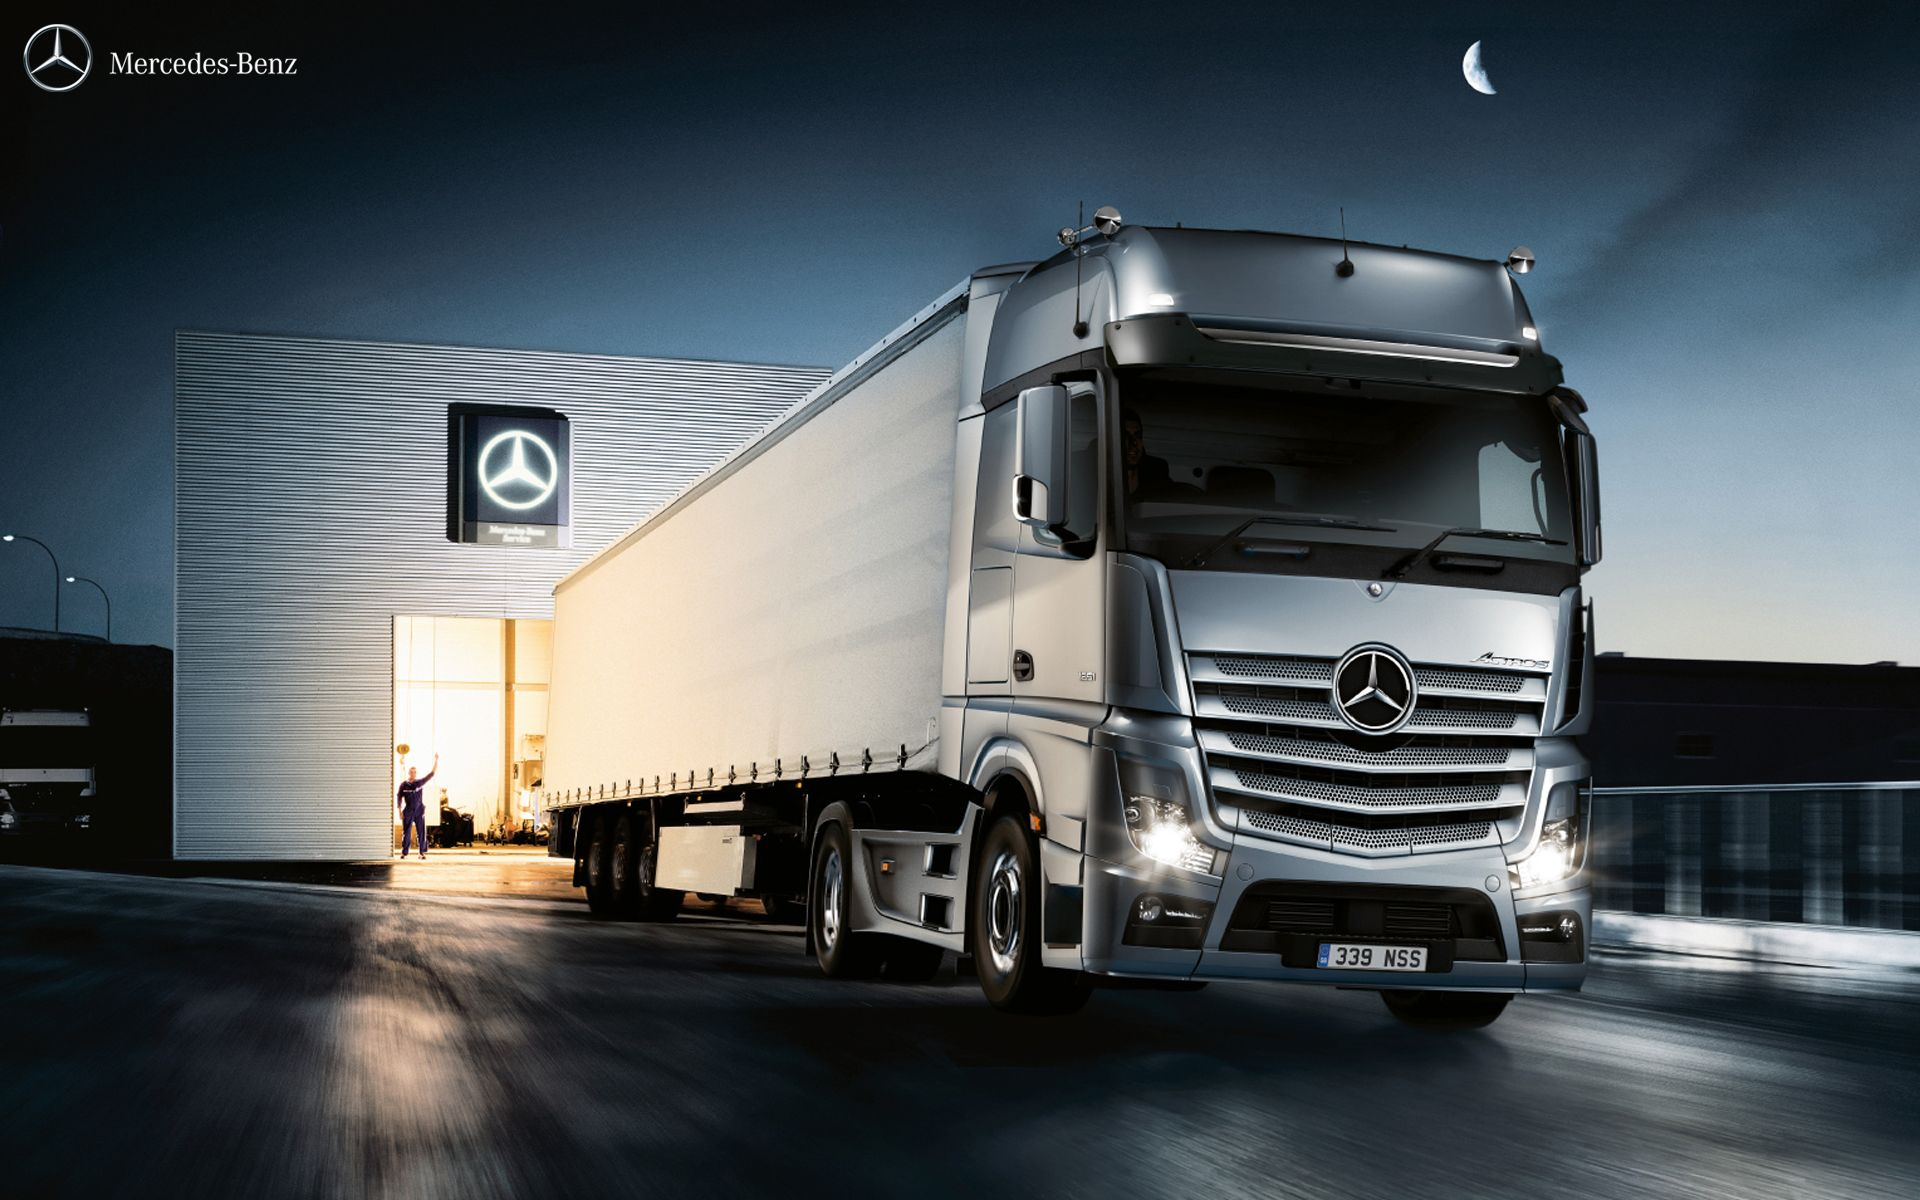 The New Actros Leaving The Warehouse Actros Mercedes Actrostrucks Trucking Trucker Trucks Benz Mercedesbenz Merce New Trucks Mercedes Trucks Trucks Absolutely stunning truck wallpapers